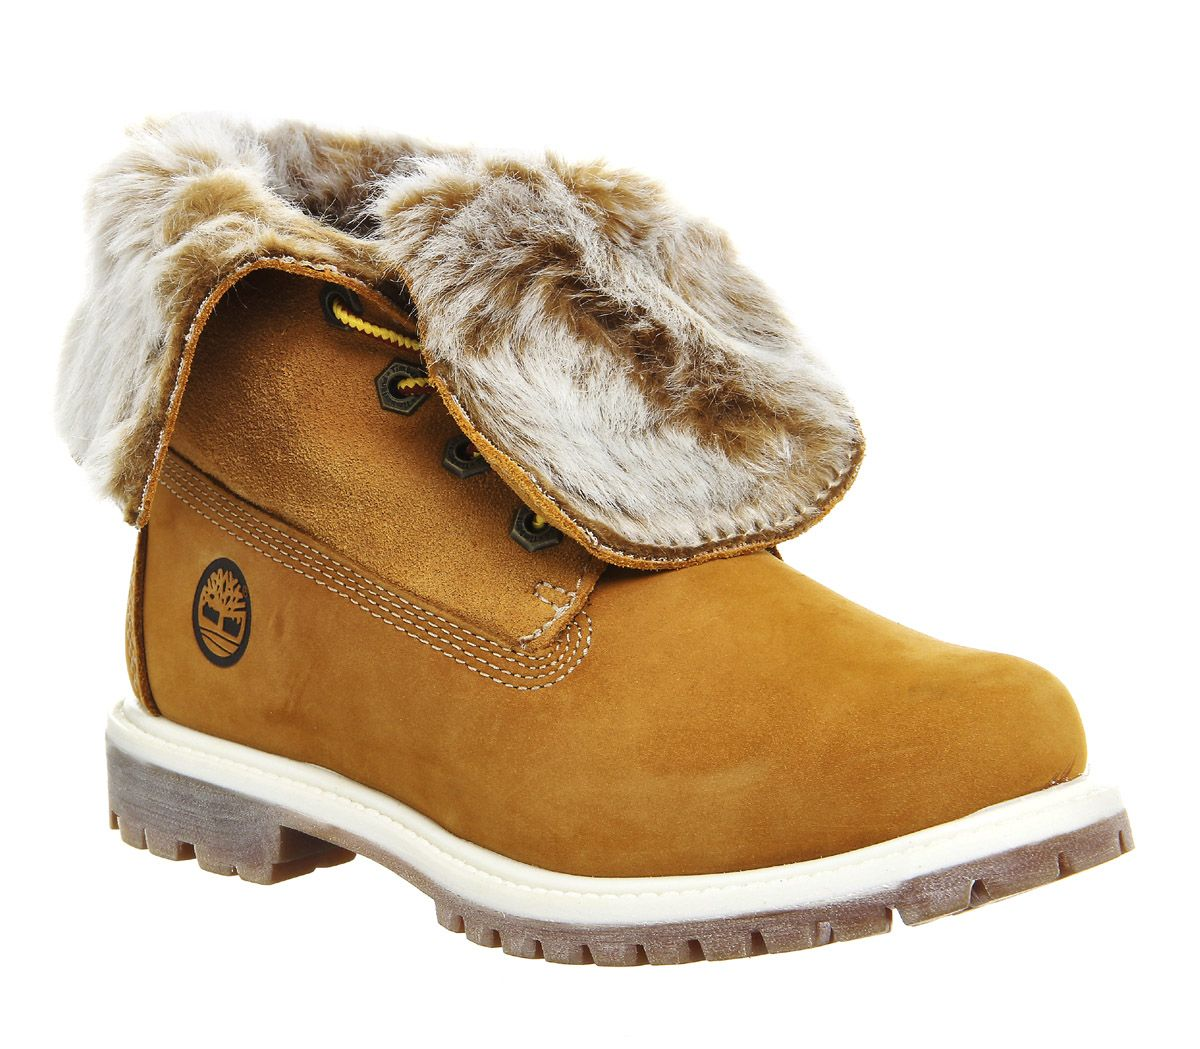 Timberland Fur Fold Down Boots Wheat Nubuck - Ankle Boots